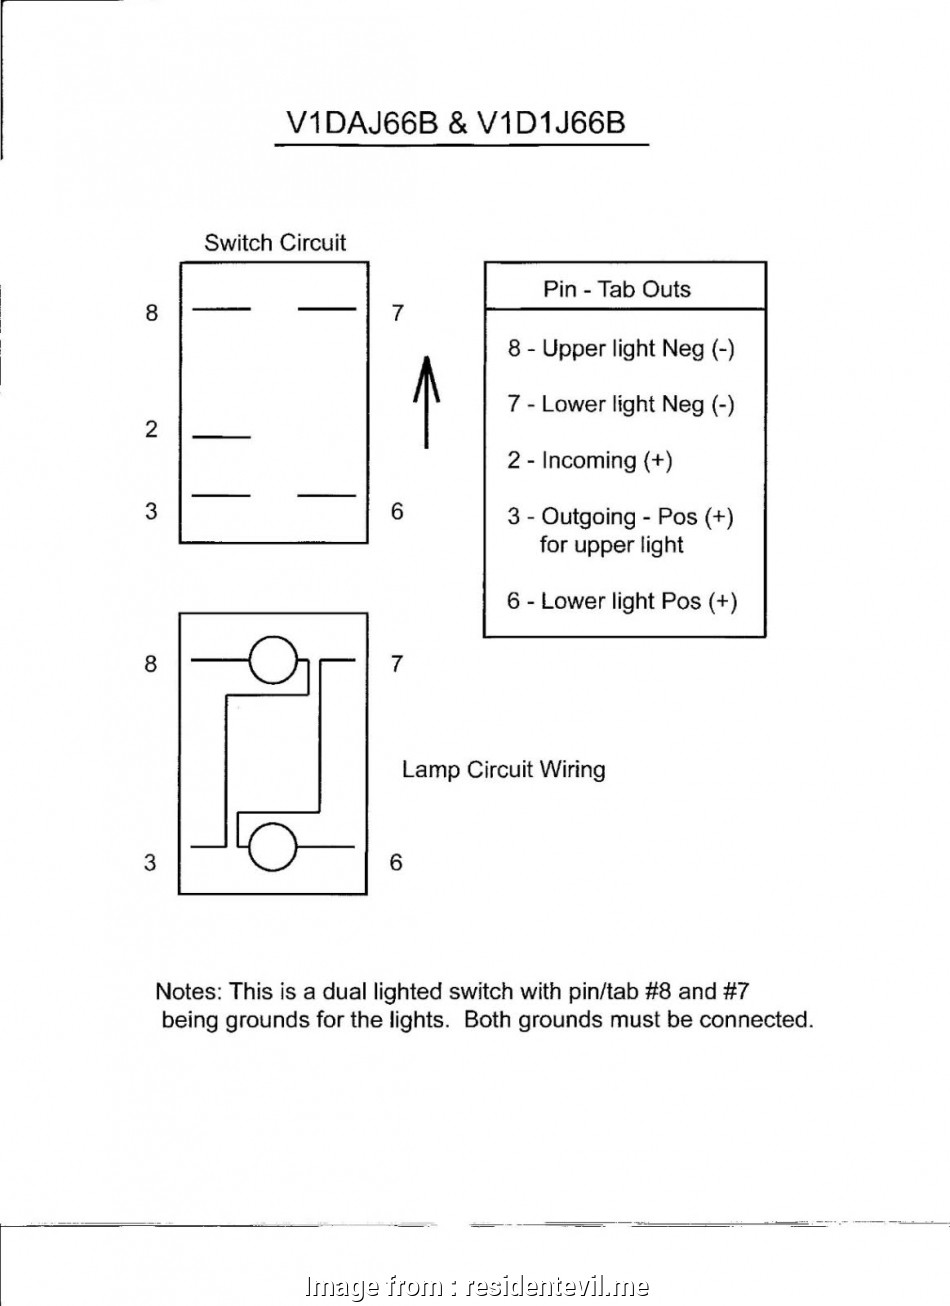 DIAGRAM] Carling Spdt Toggle Switch Wiring Diagram FULL Version HD Quality Wiring  Diagram - MALIKSAUTOCARE.ROBERTOSHOP.ITmaliksautocare.robertoshop.it